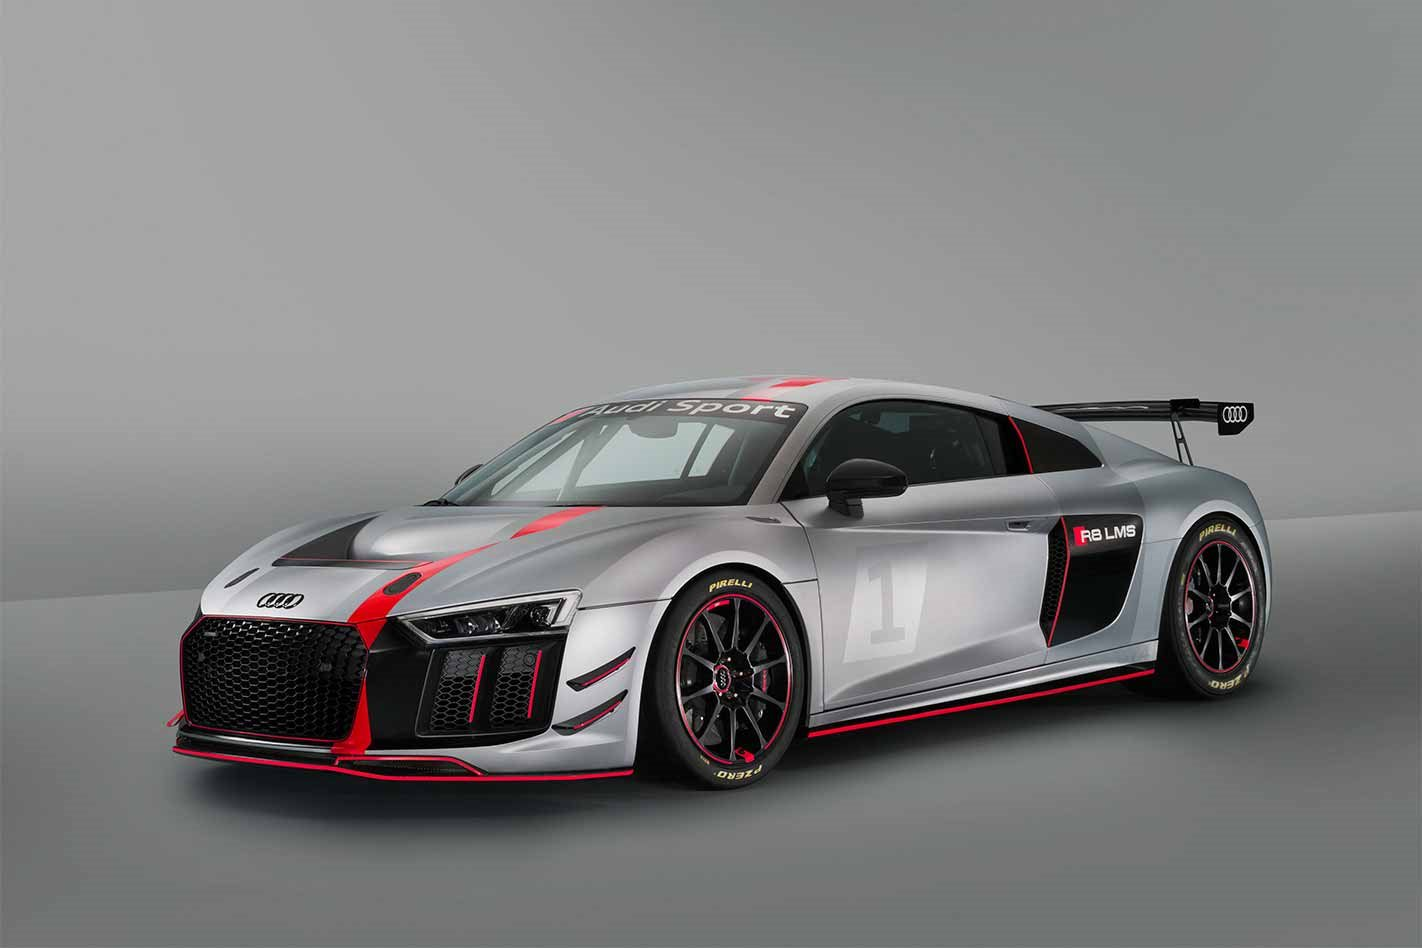 new york motor show 2018 audi r8 lms gt4 motor. Black Bedroom Furniture Sets. Home Design Ideas